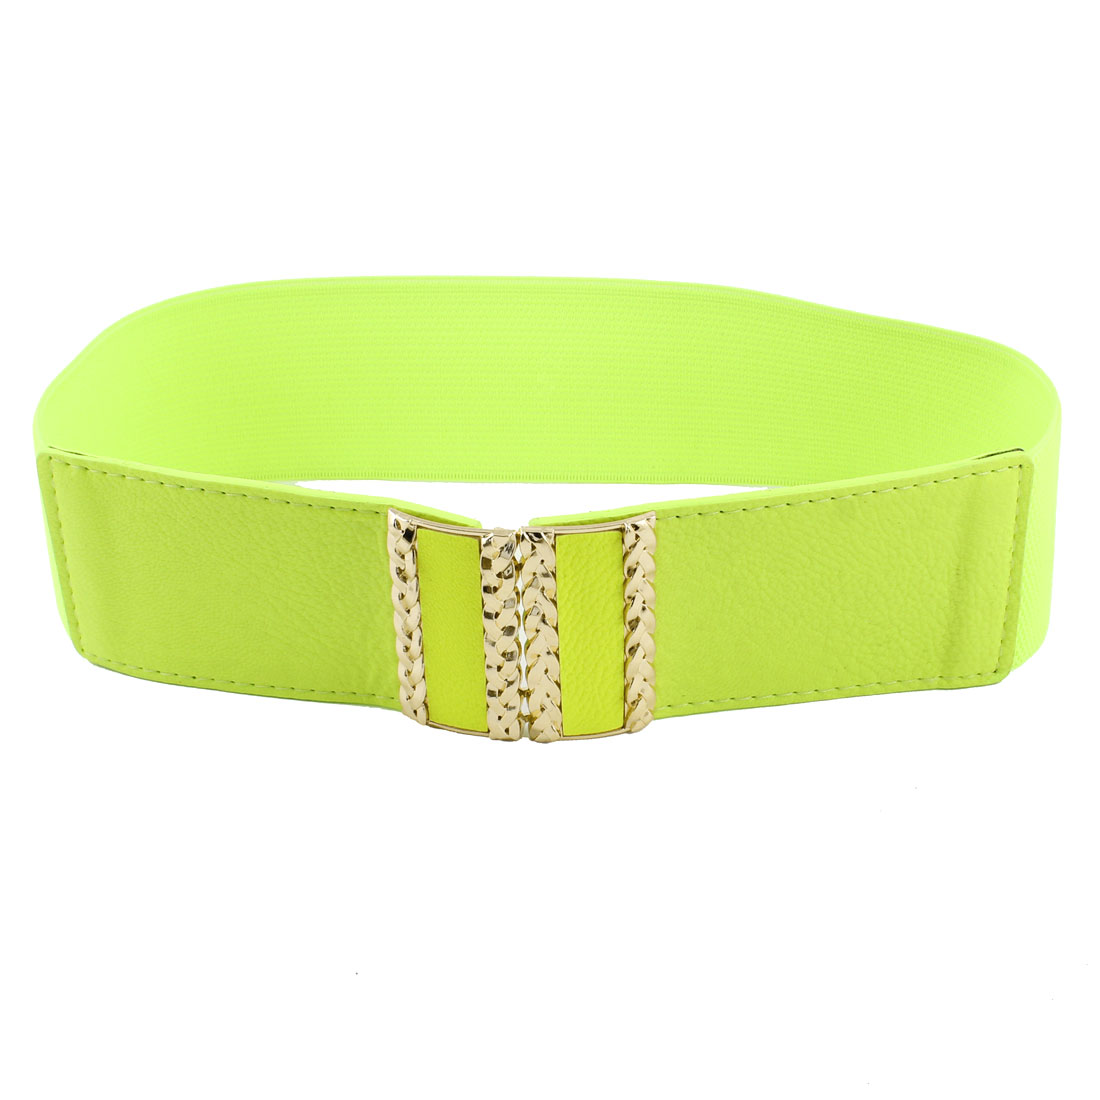 Rectangle Interlocking Buckle Faux Leather Stretchy Cinch Belt Light Green for Women